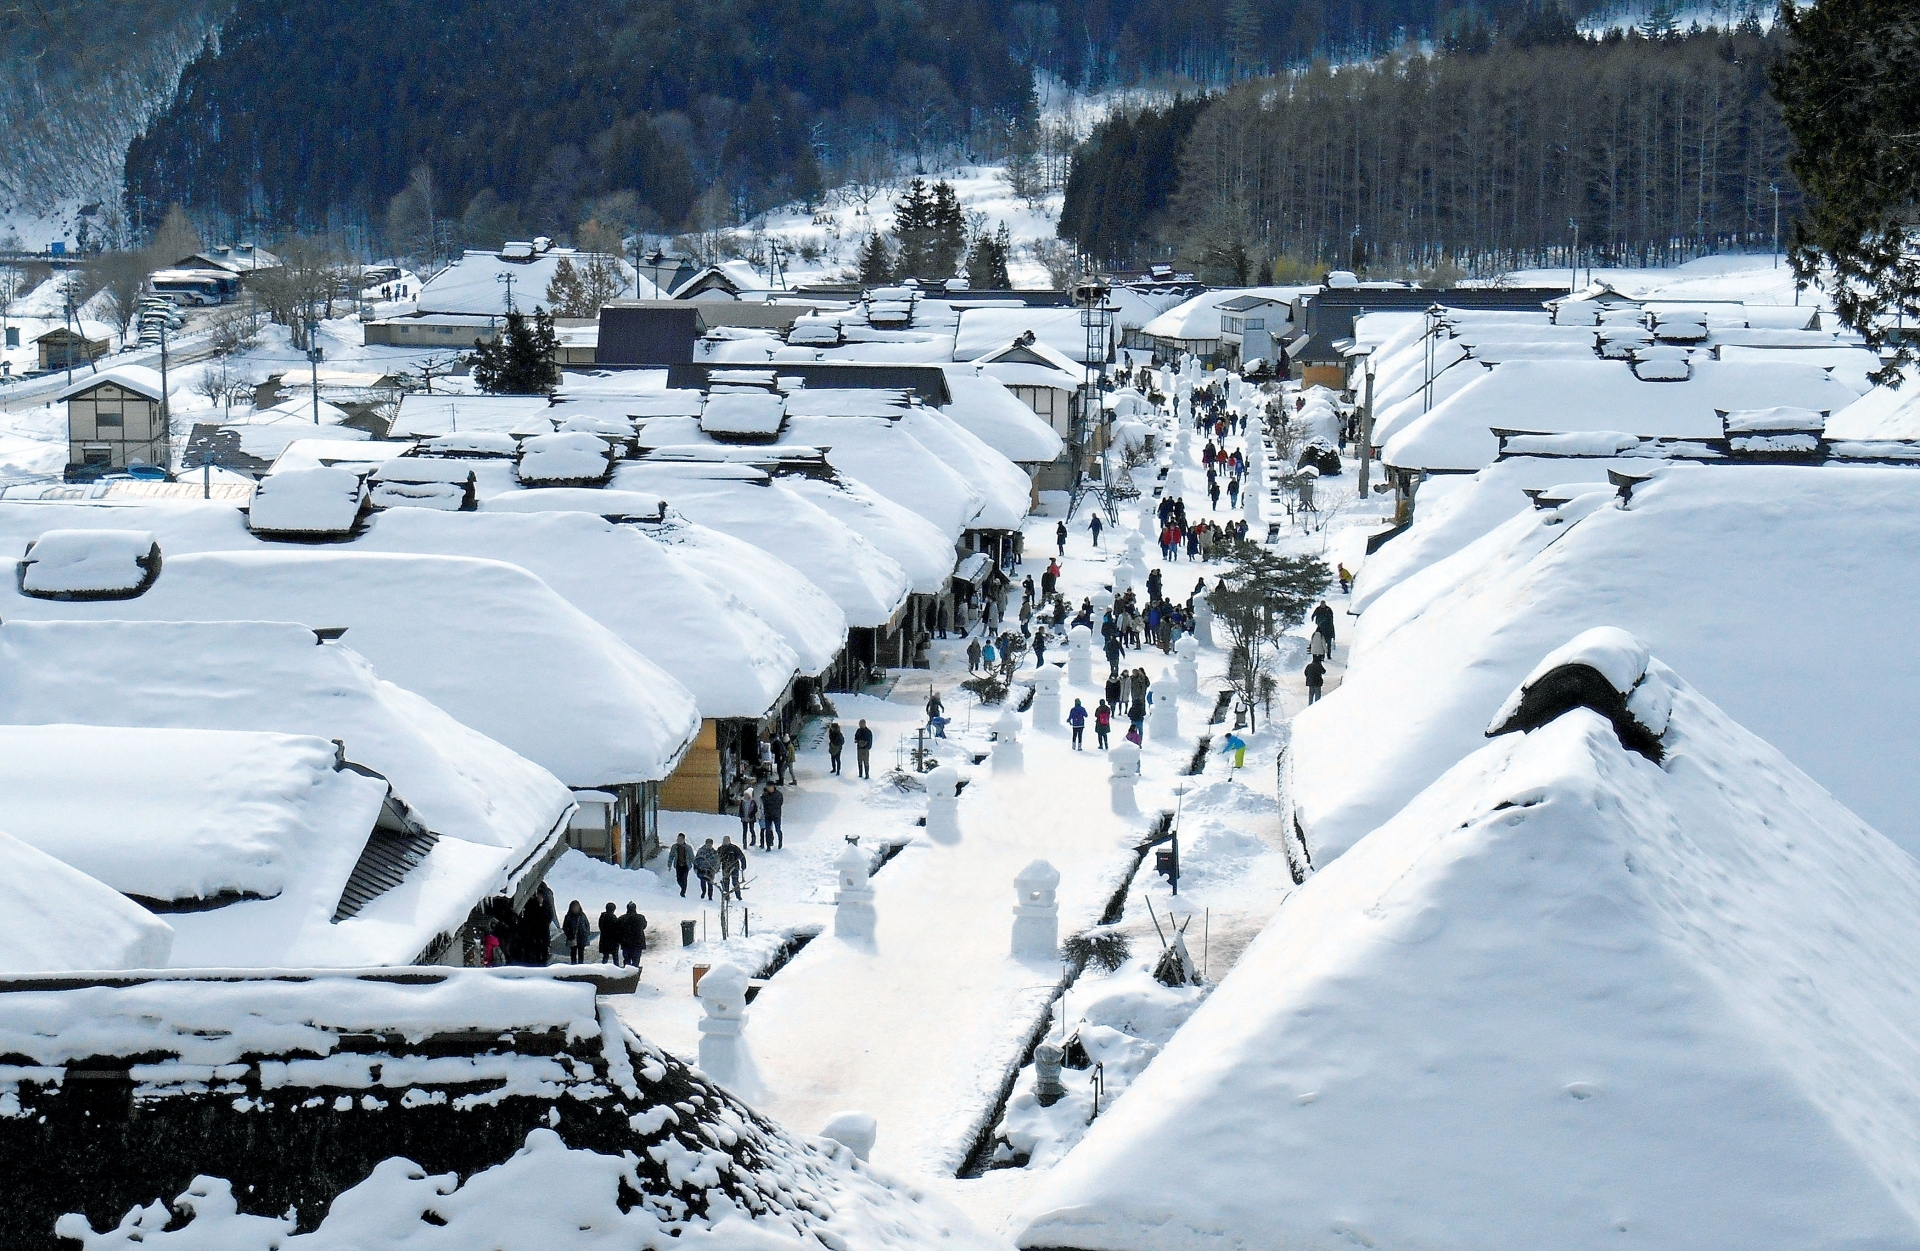 Ouchijuku during the Snow Festival